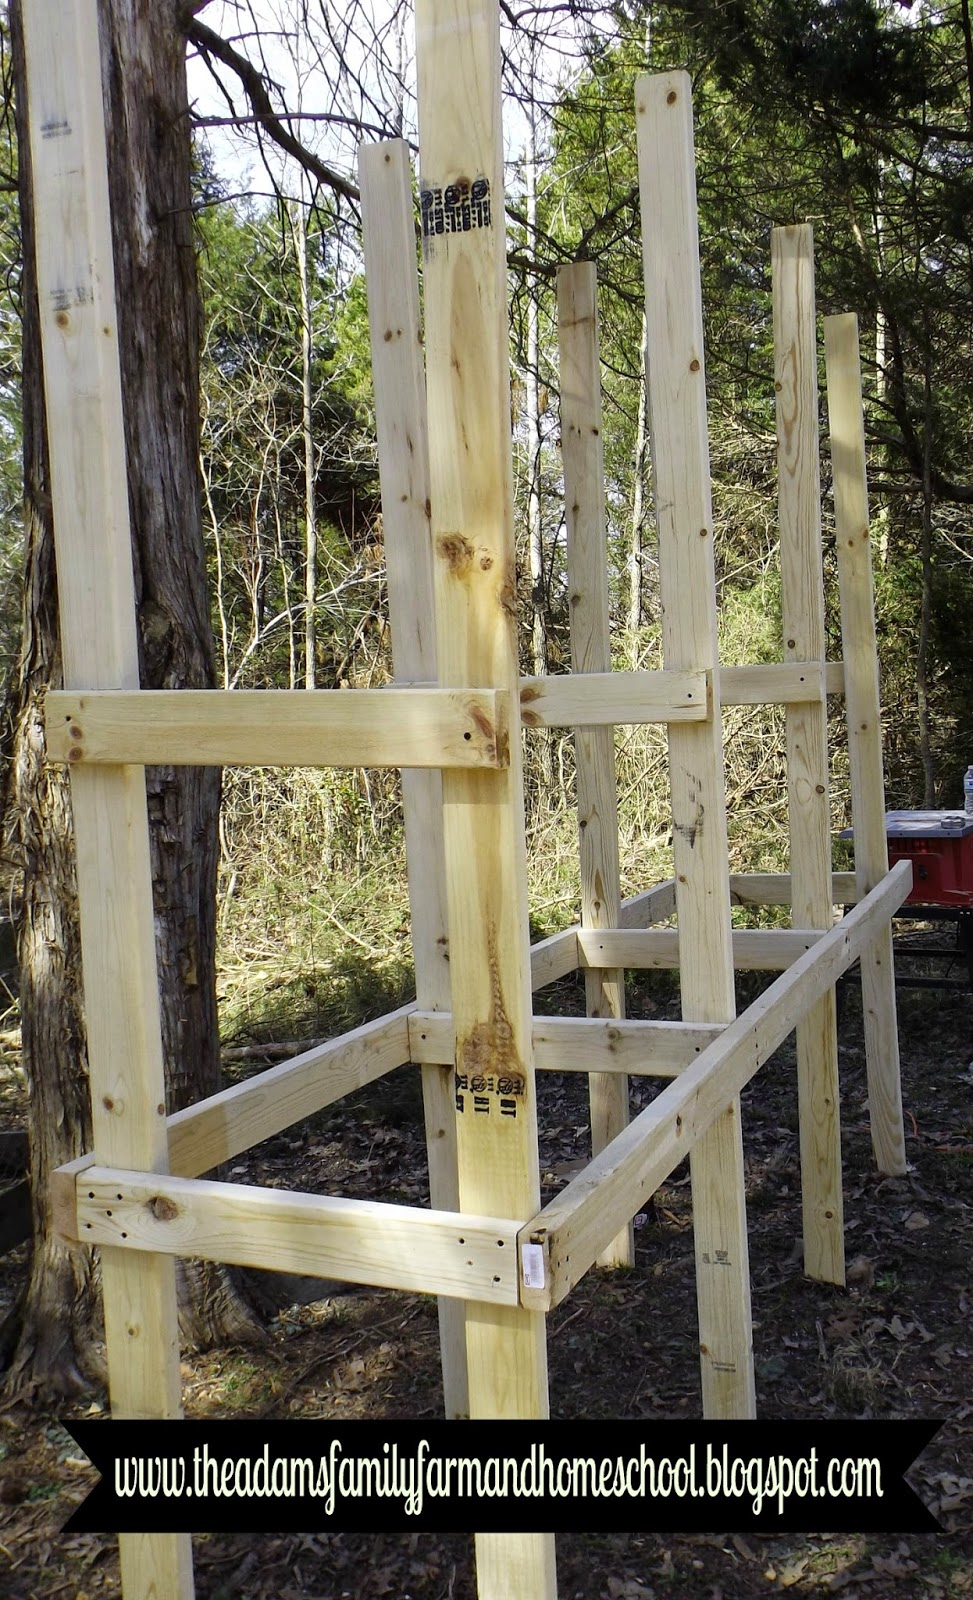 Building Frame of Rabbit Cage